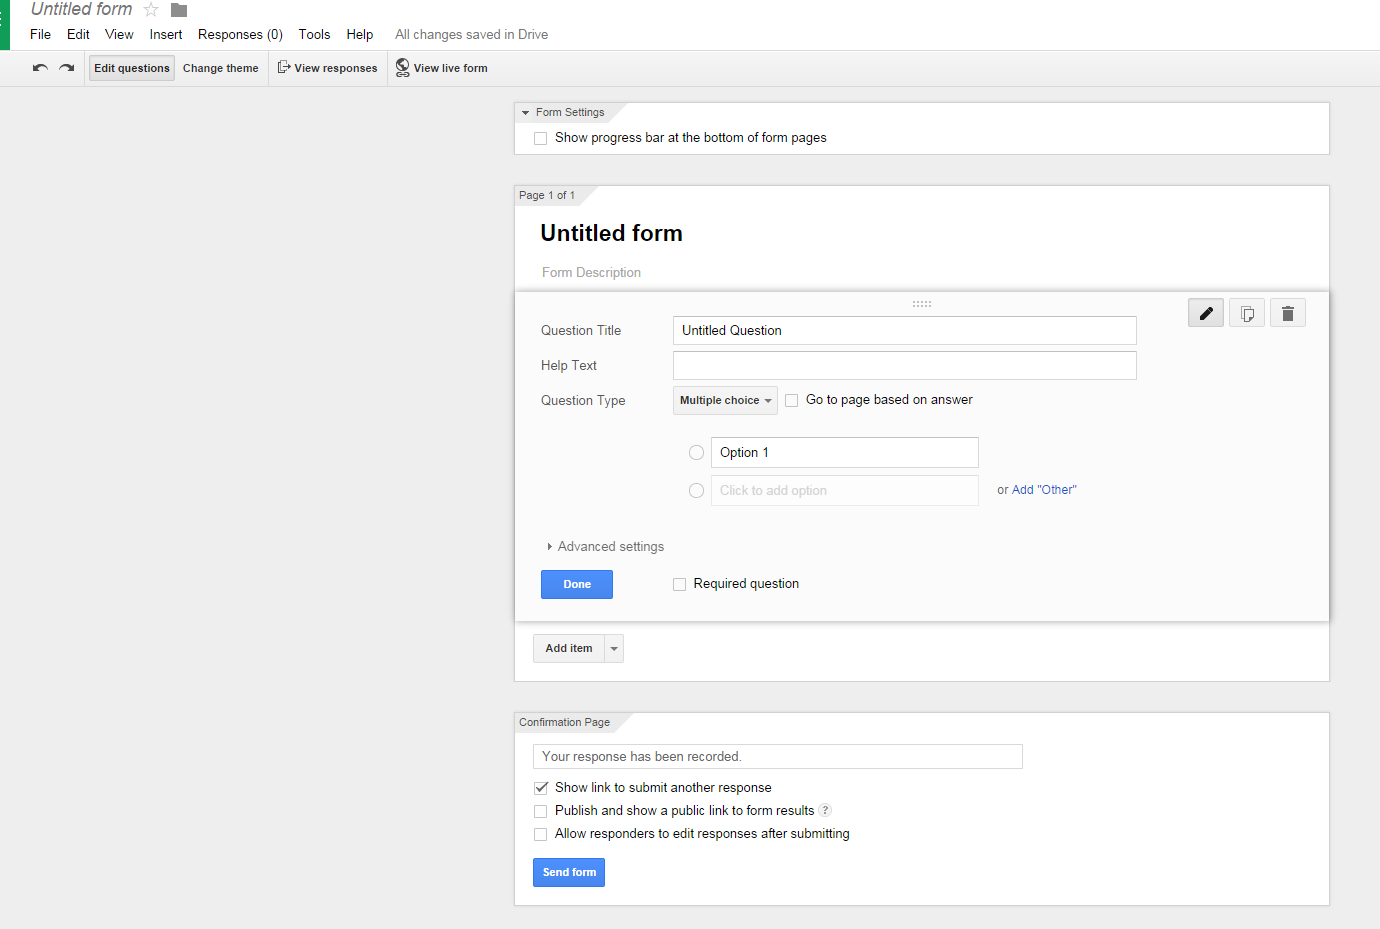 I would like to create a form from within google drive using the ...